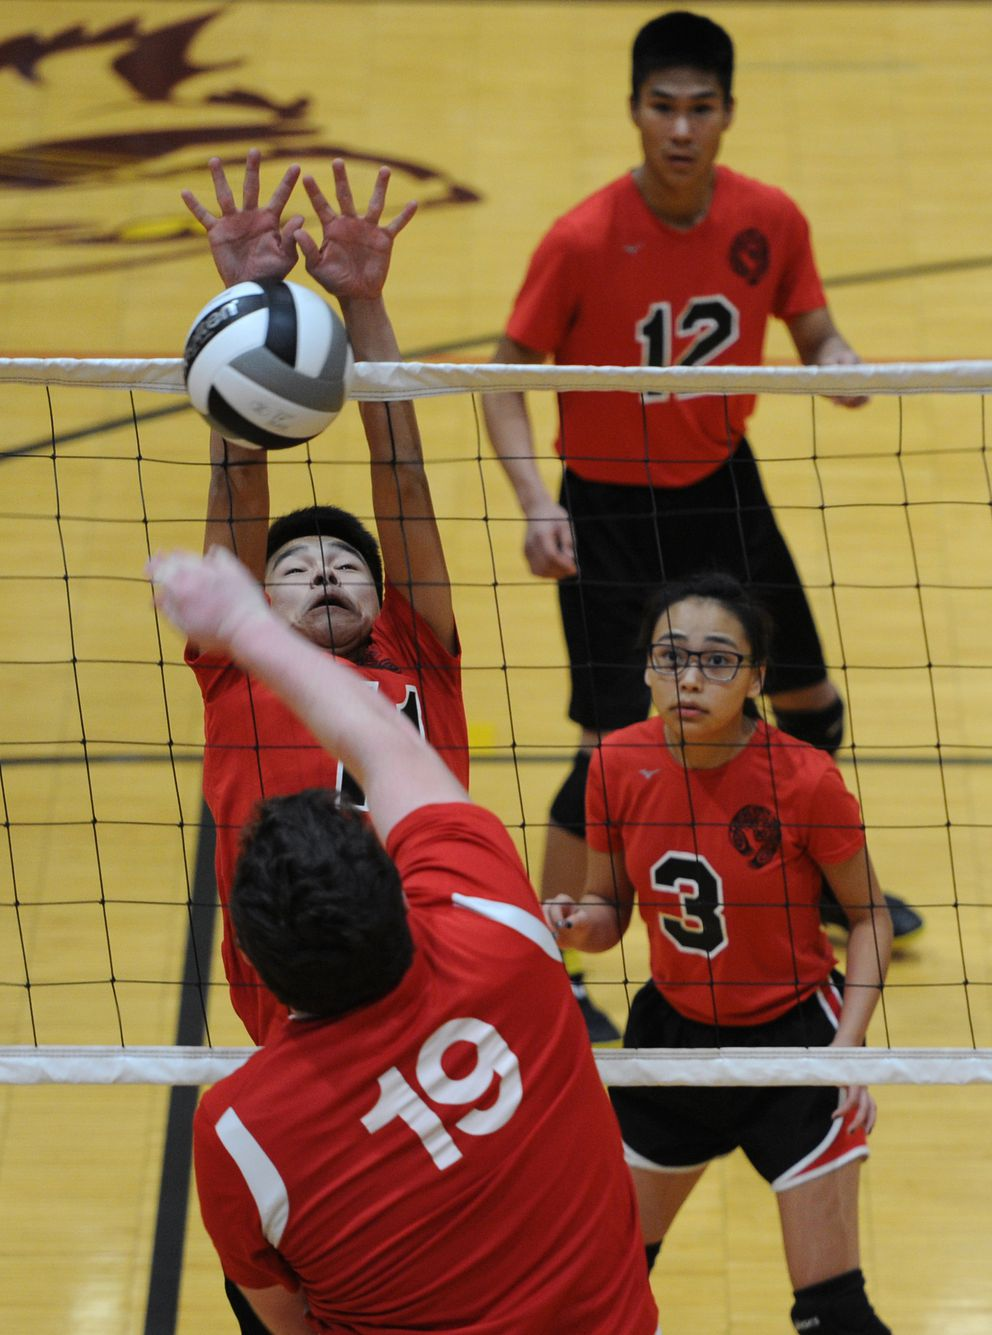 Gustavus sophomore David Shatswell (19) hits the ball toward Akiuk junior Nikolai Charles during pool play in the Mix Six state volleyball championships. (Bill Roth / ADN)